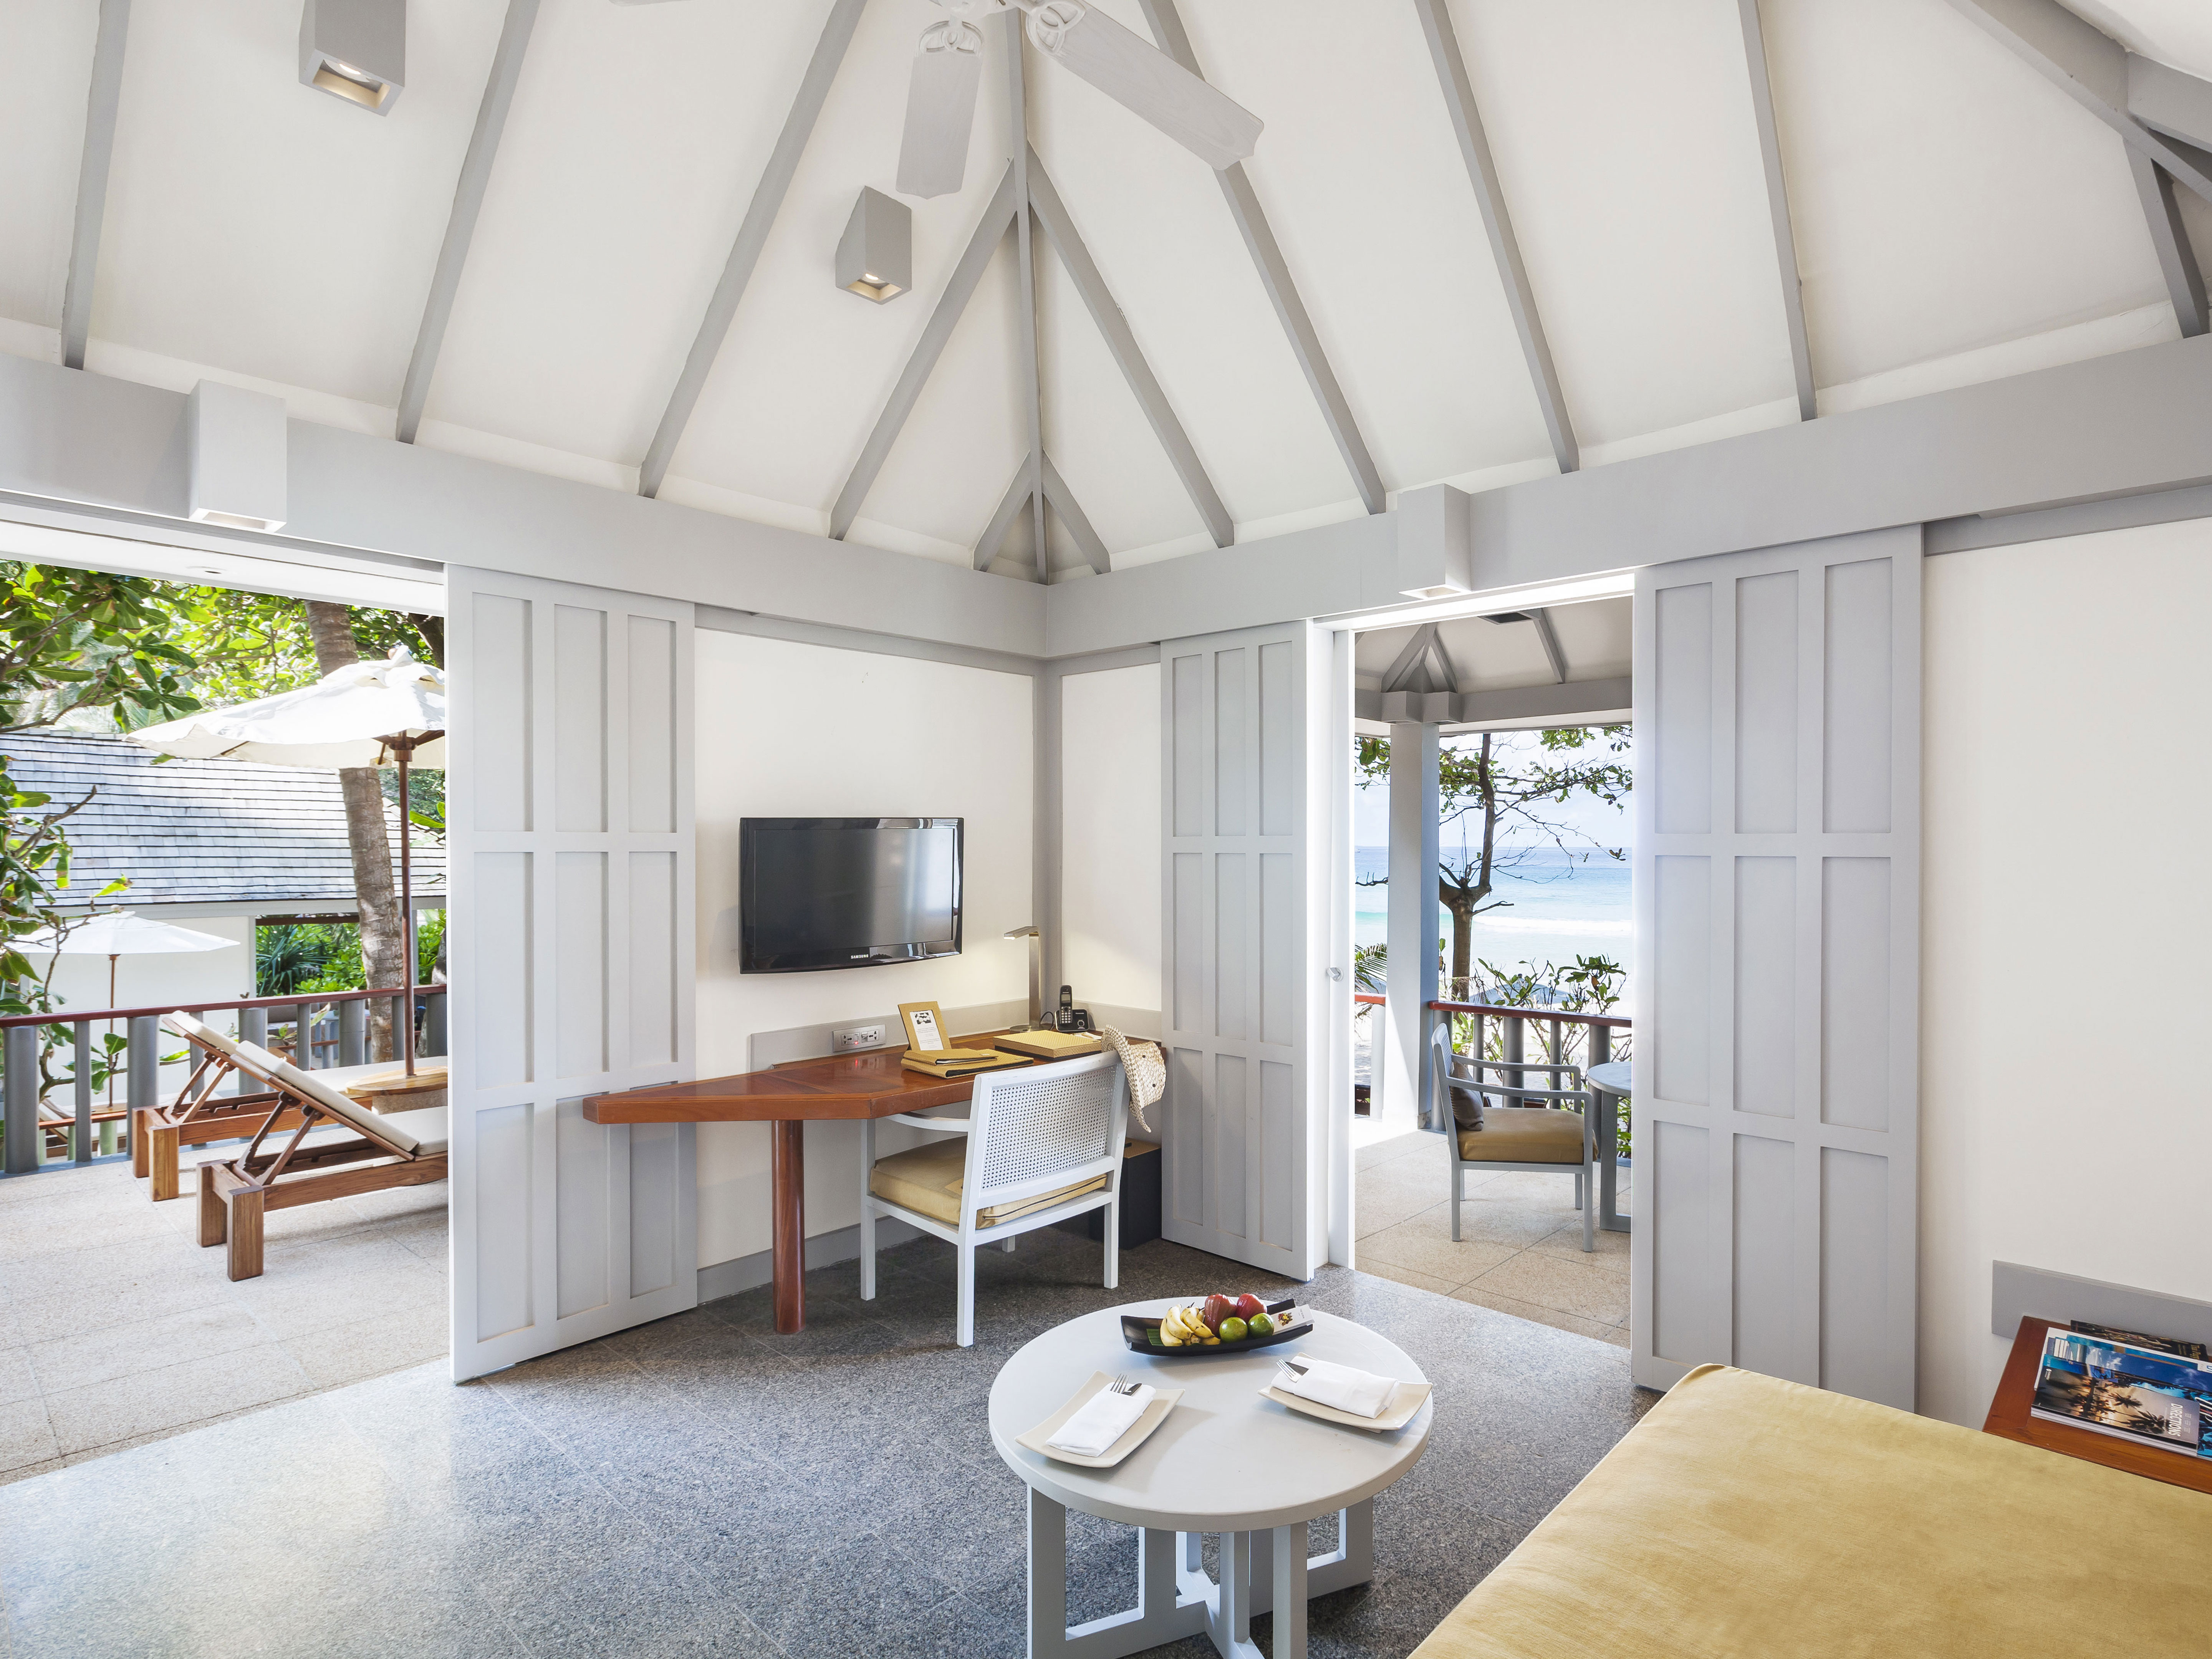 Rooms Amp Suites At The Surin In Phuket Thailand Design